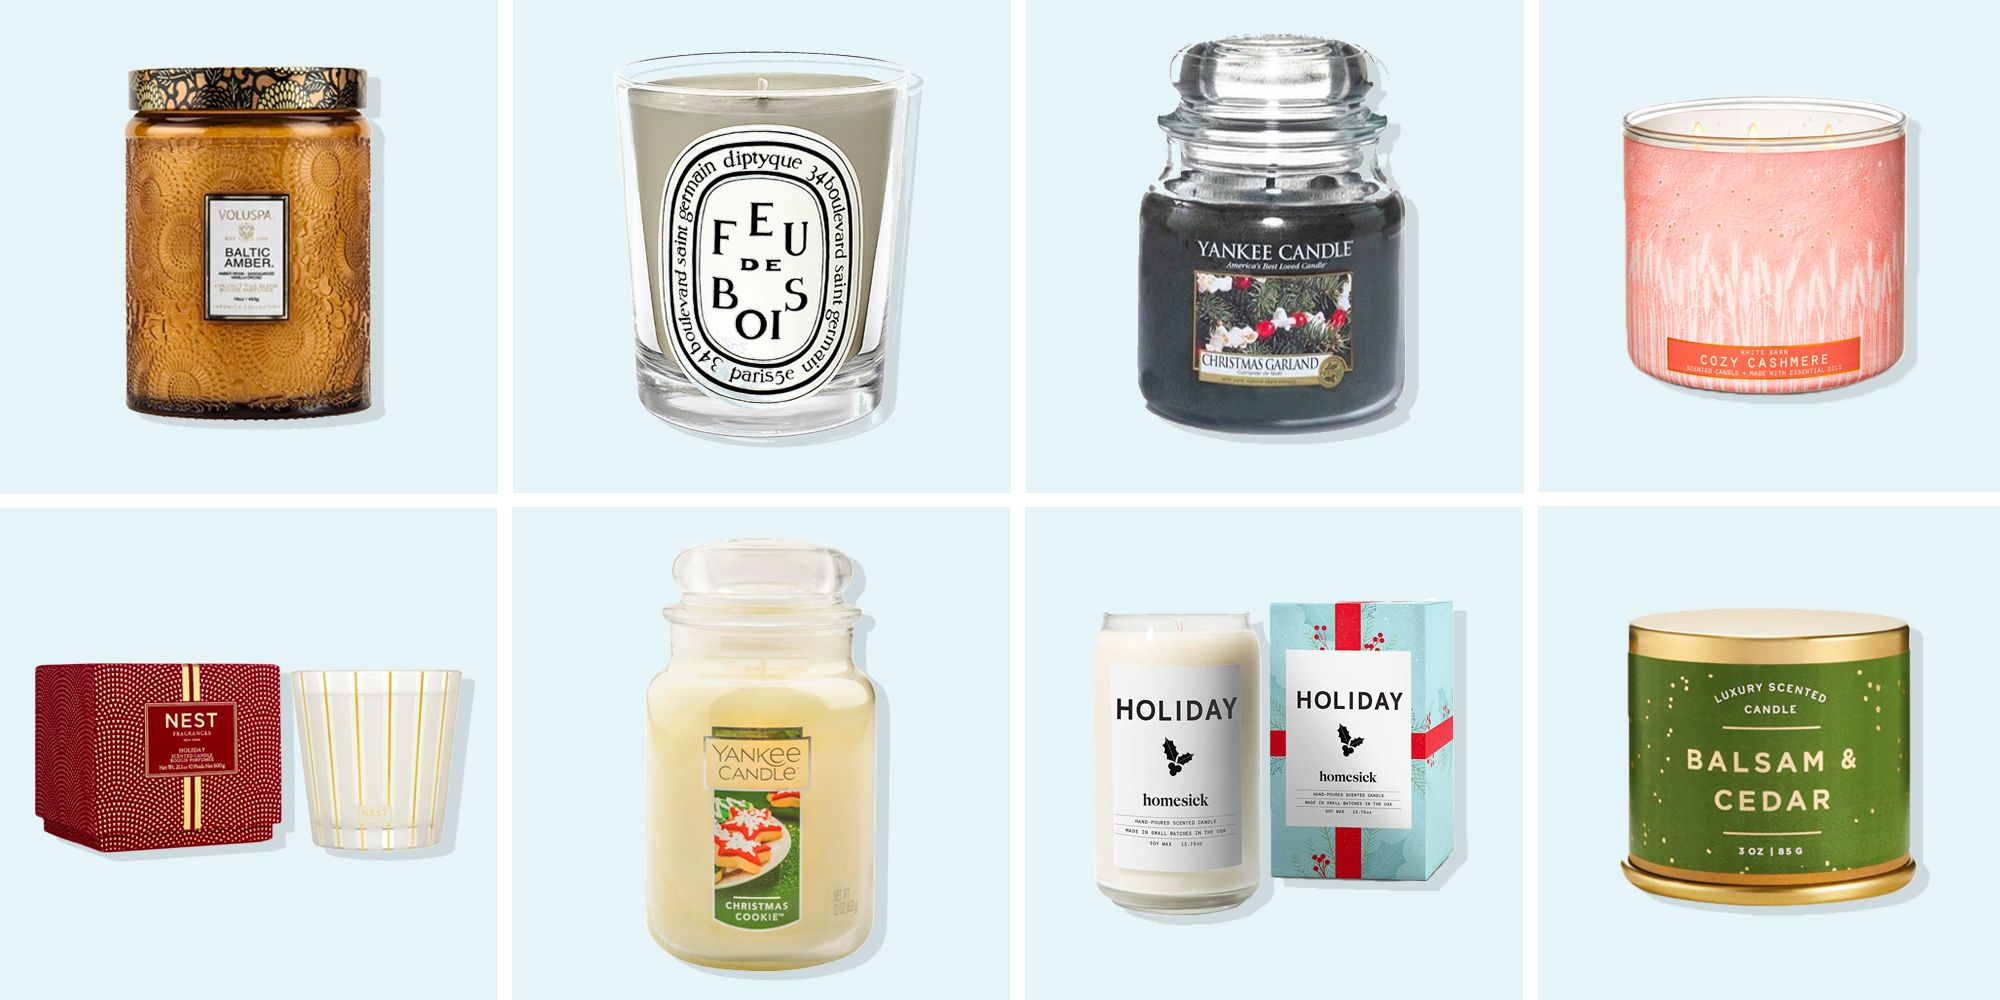 20 Best Christmas Candles 2020 Holiday Scented Candles